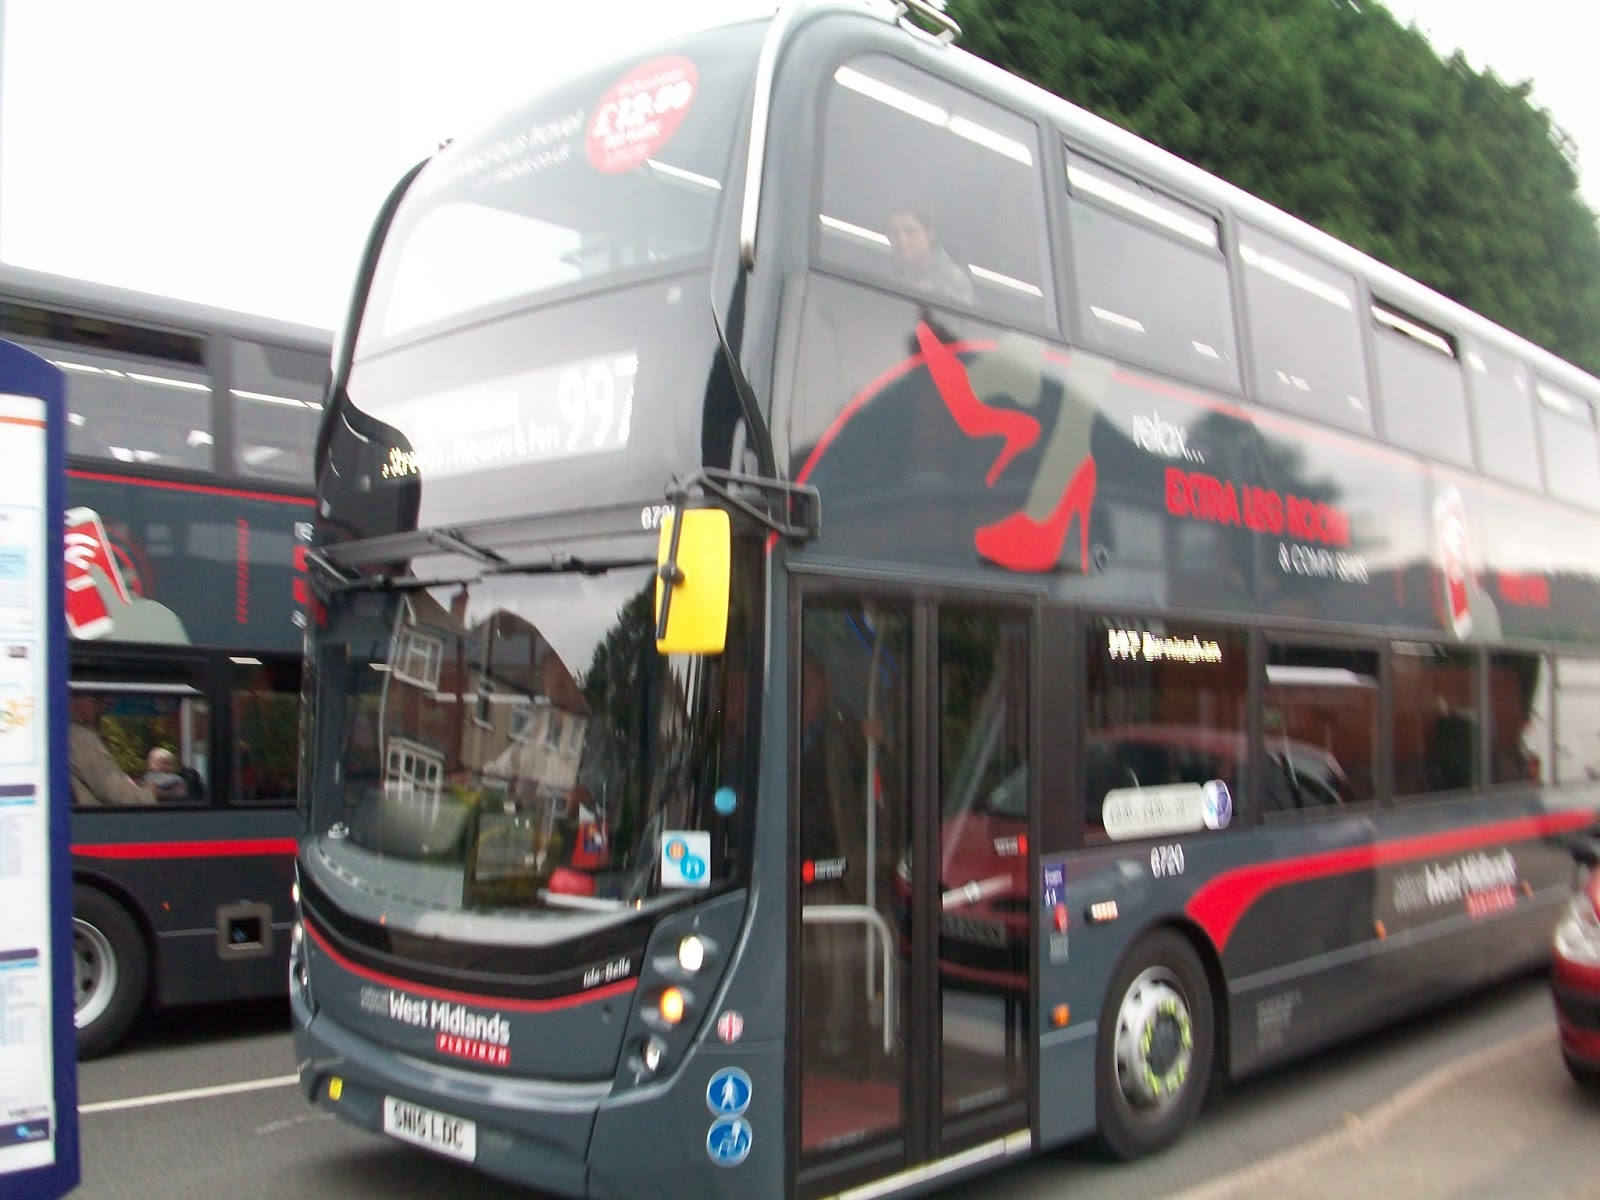 A The Councillor Champion For The Route I Am Like Nx Pleased To Confirm That More Platinum Services Have Now Been Launched This Time On Service 997 Between